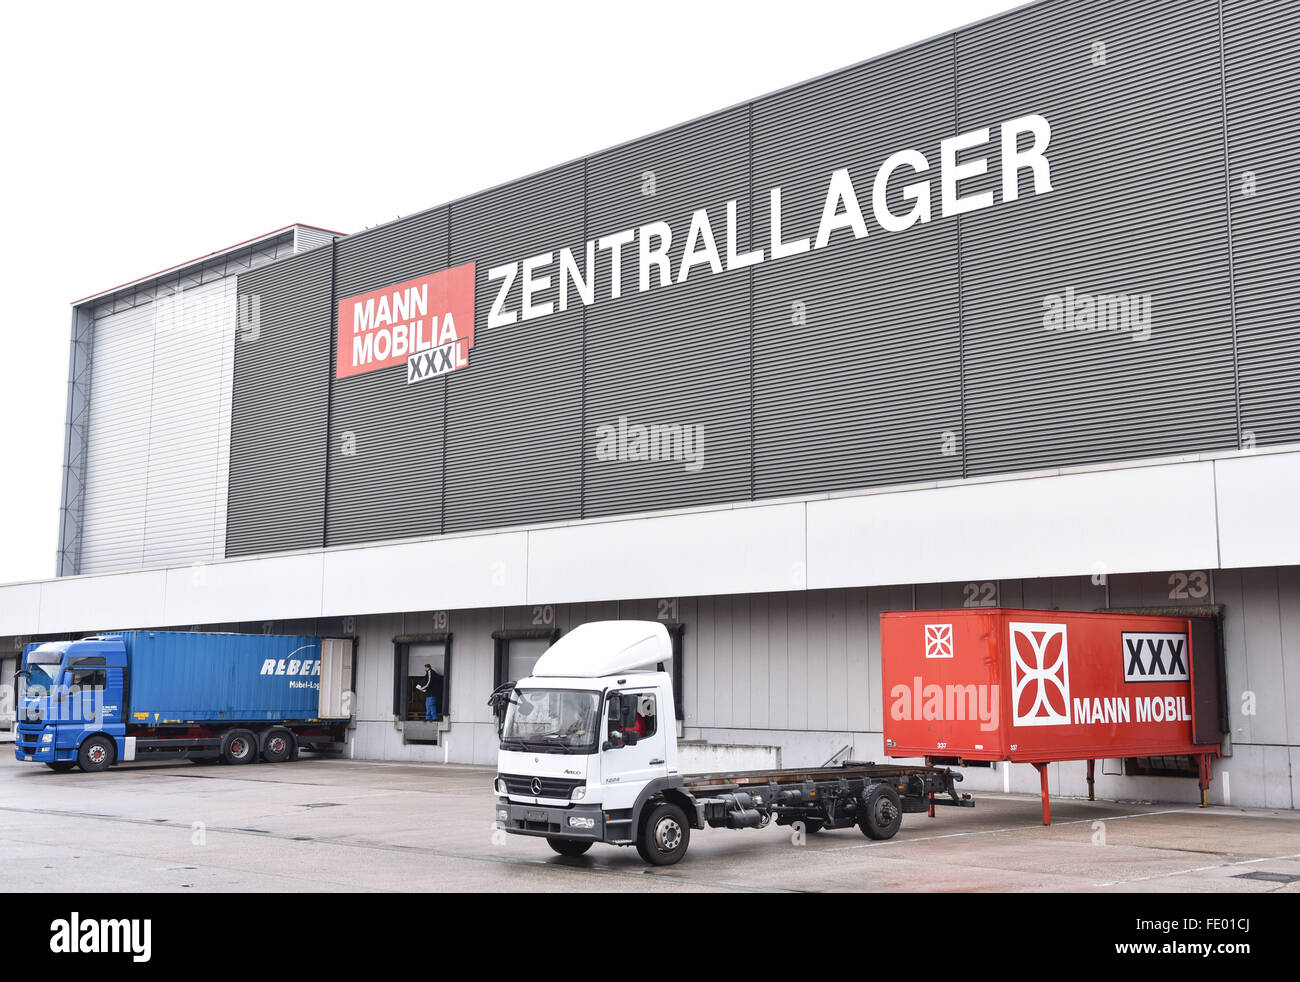 Mann Mobilia trucks are parked in front of the central warehouse of the furniture